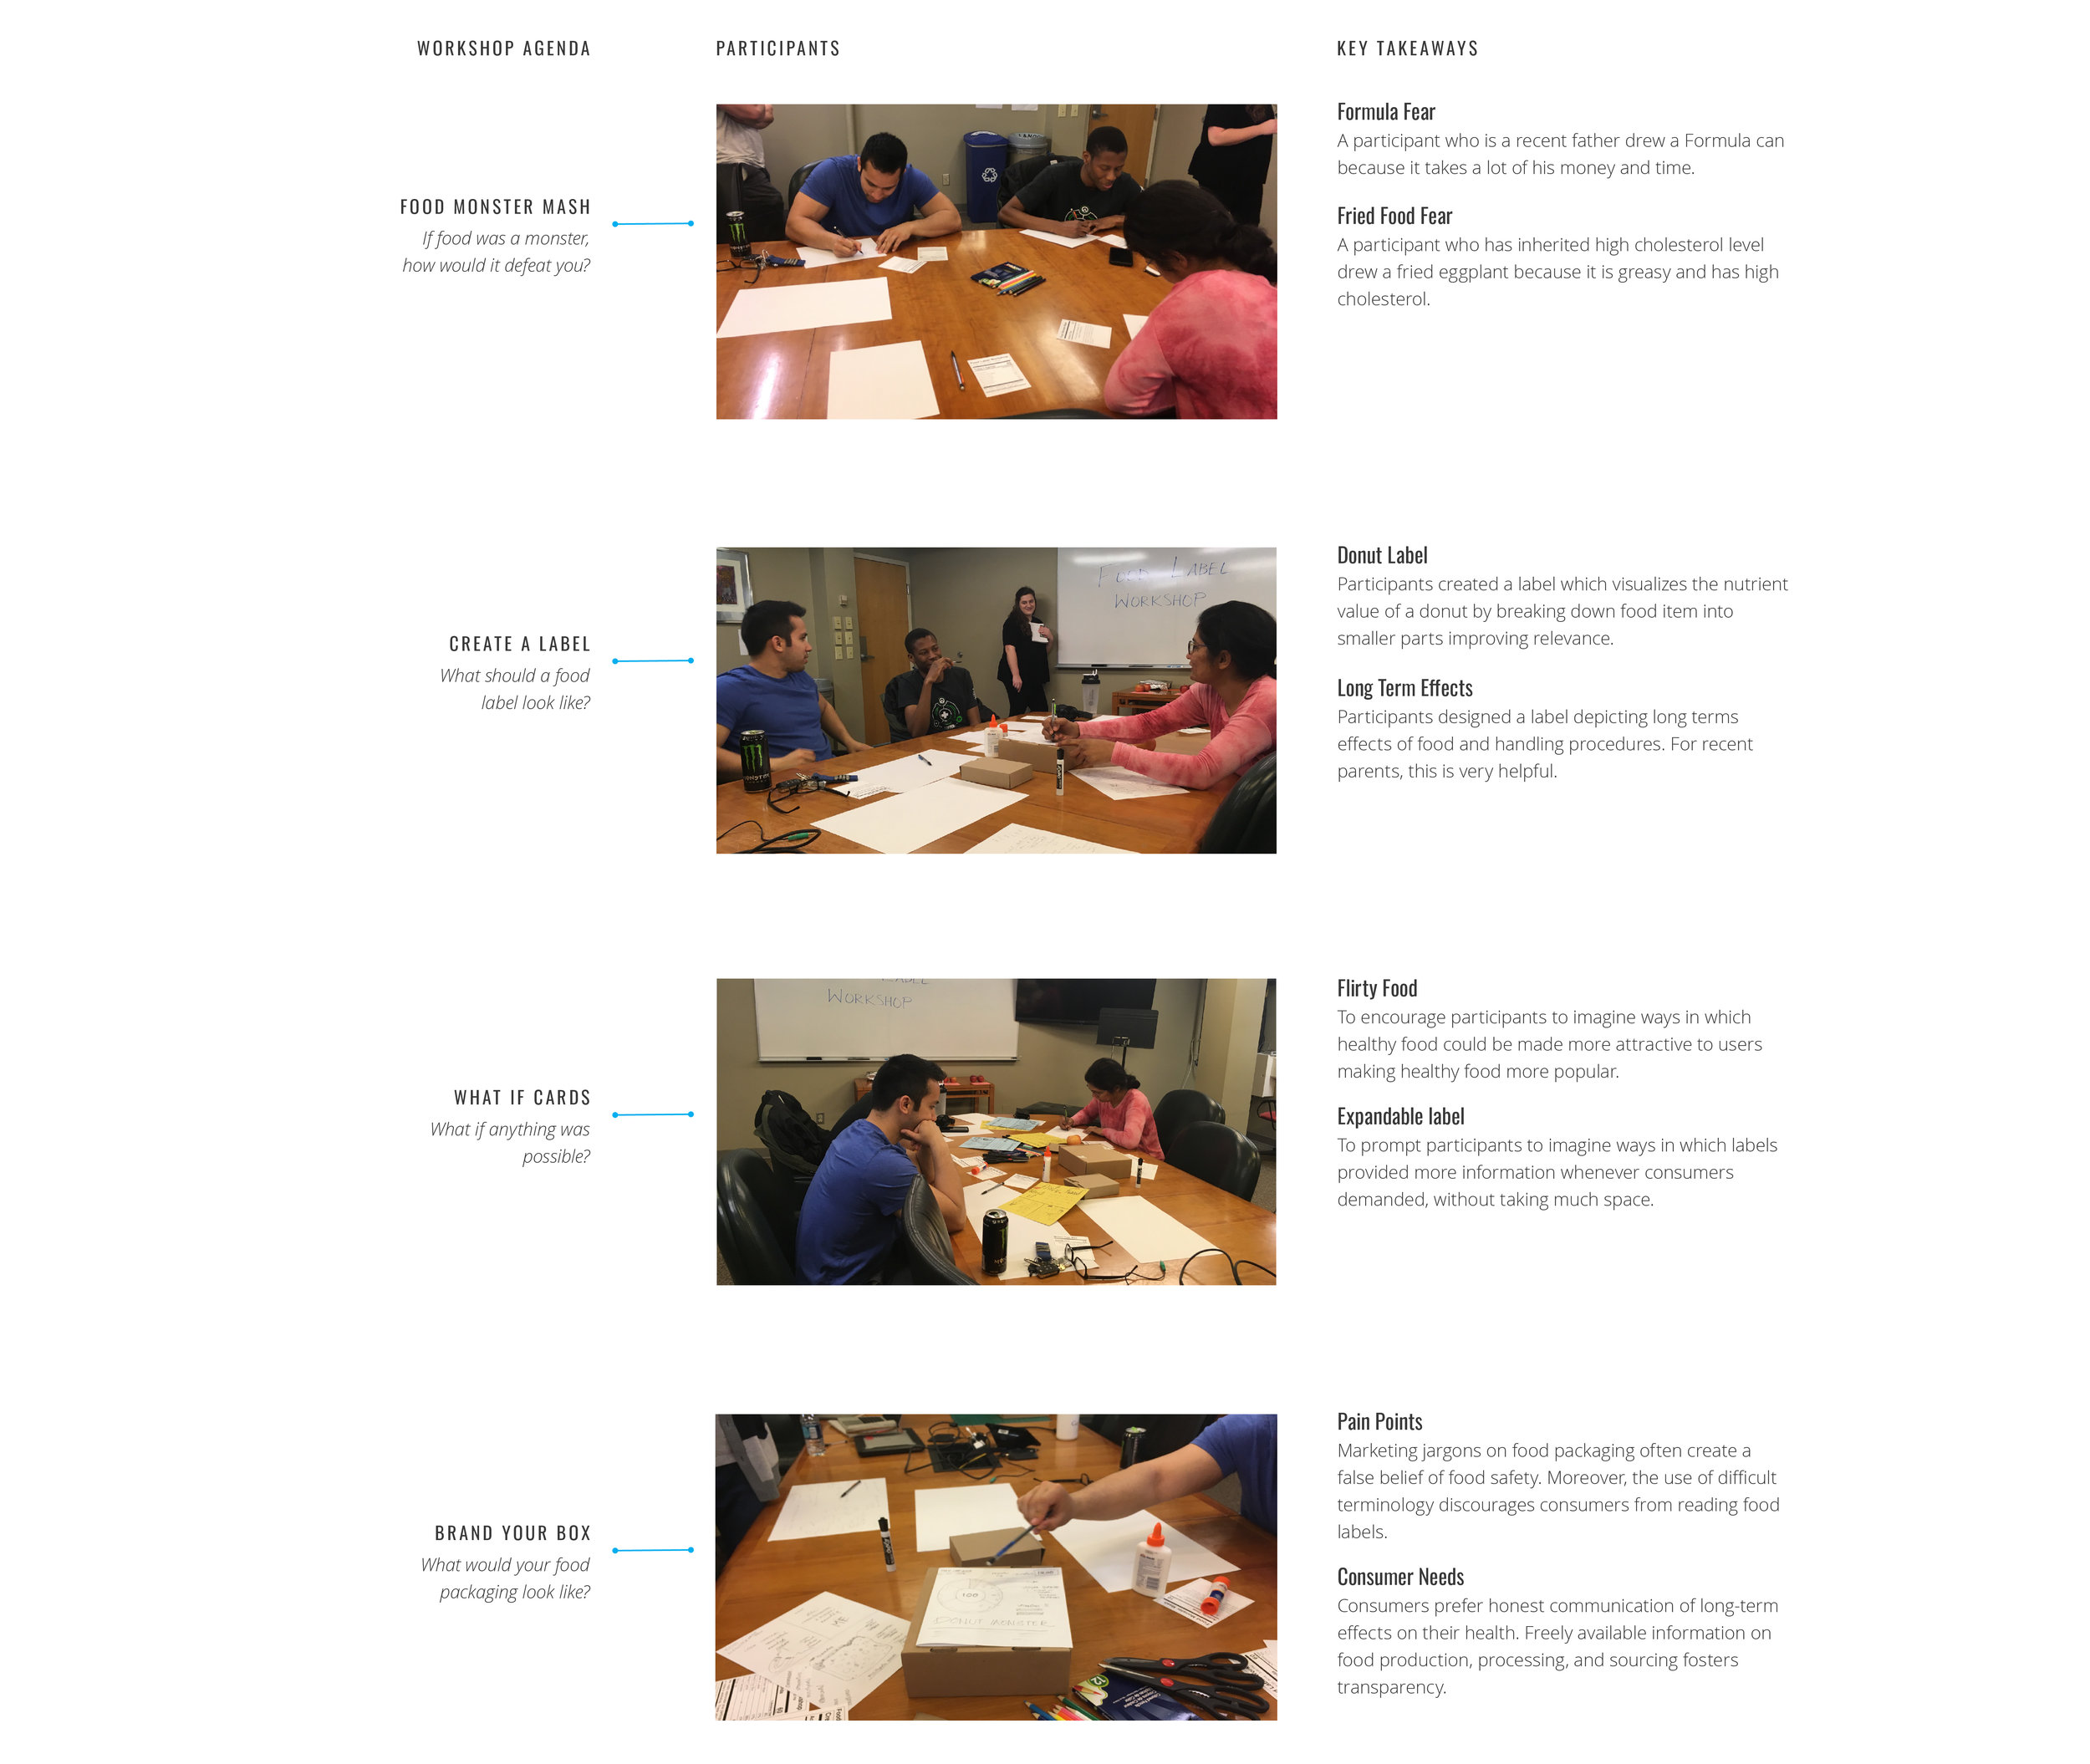 This image depicts the process of Co-Design workshop. It contains list of activities, participants and key takeaways. It is a information heavy image. As an author I would love to talk about it personally.